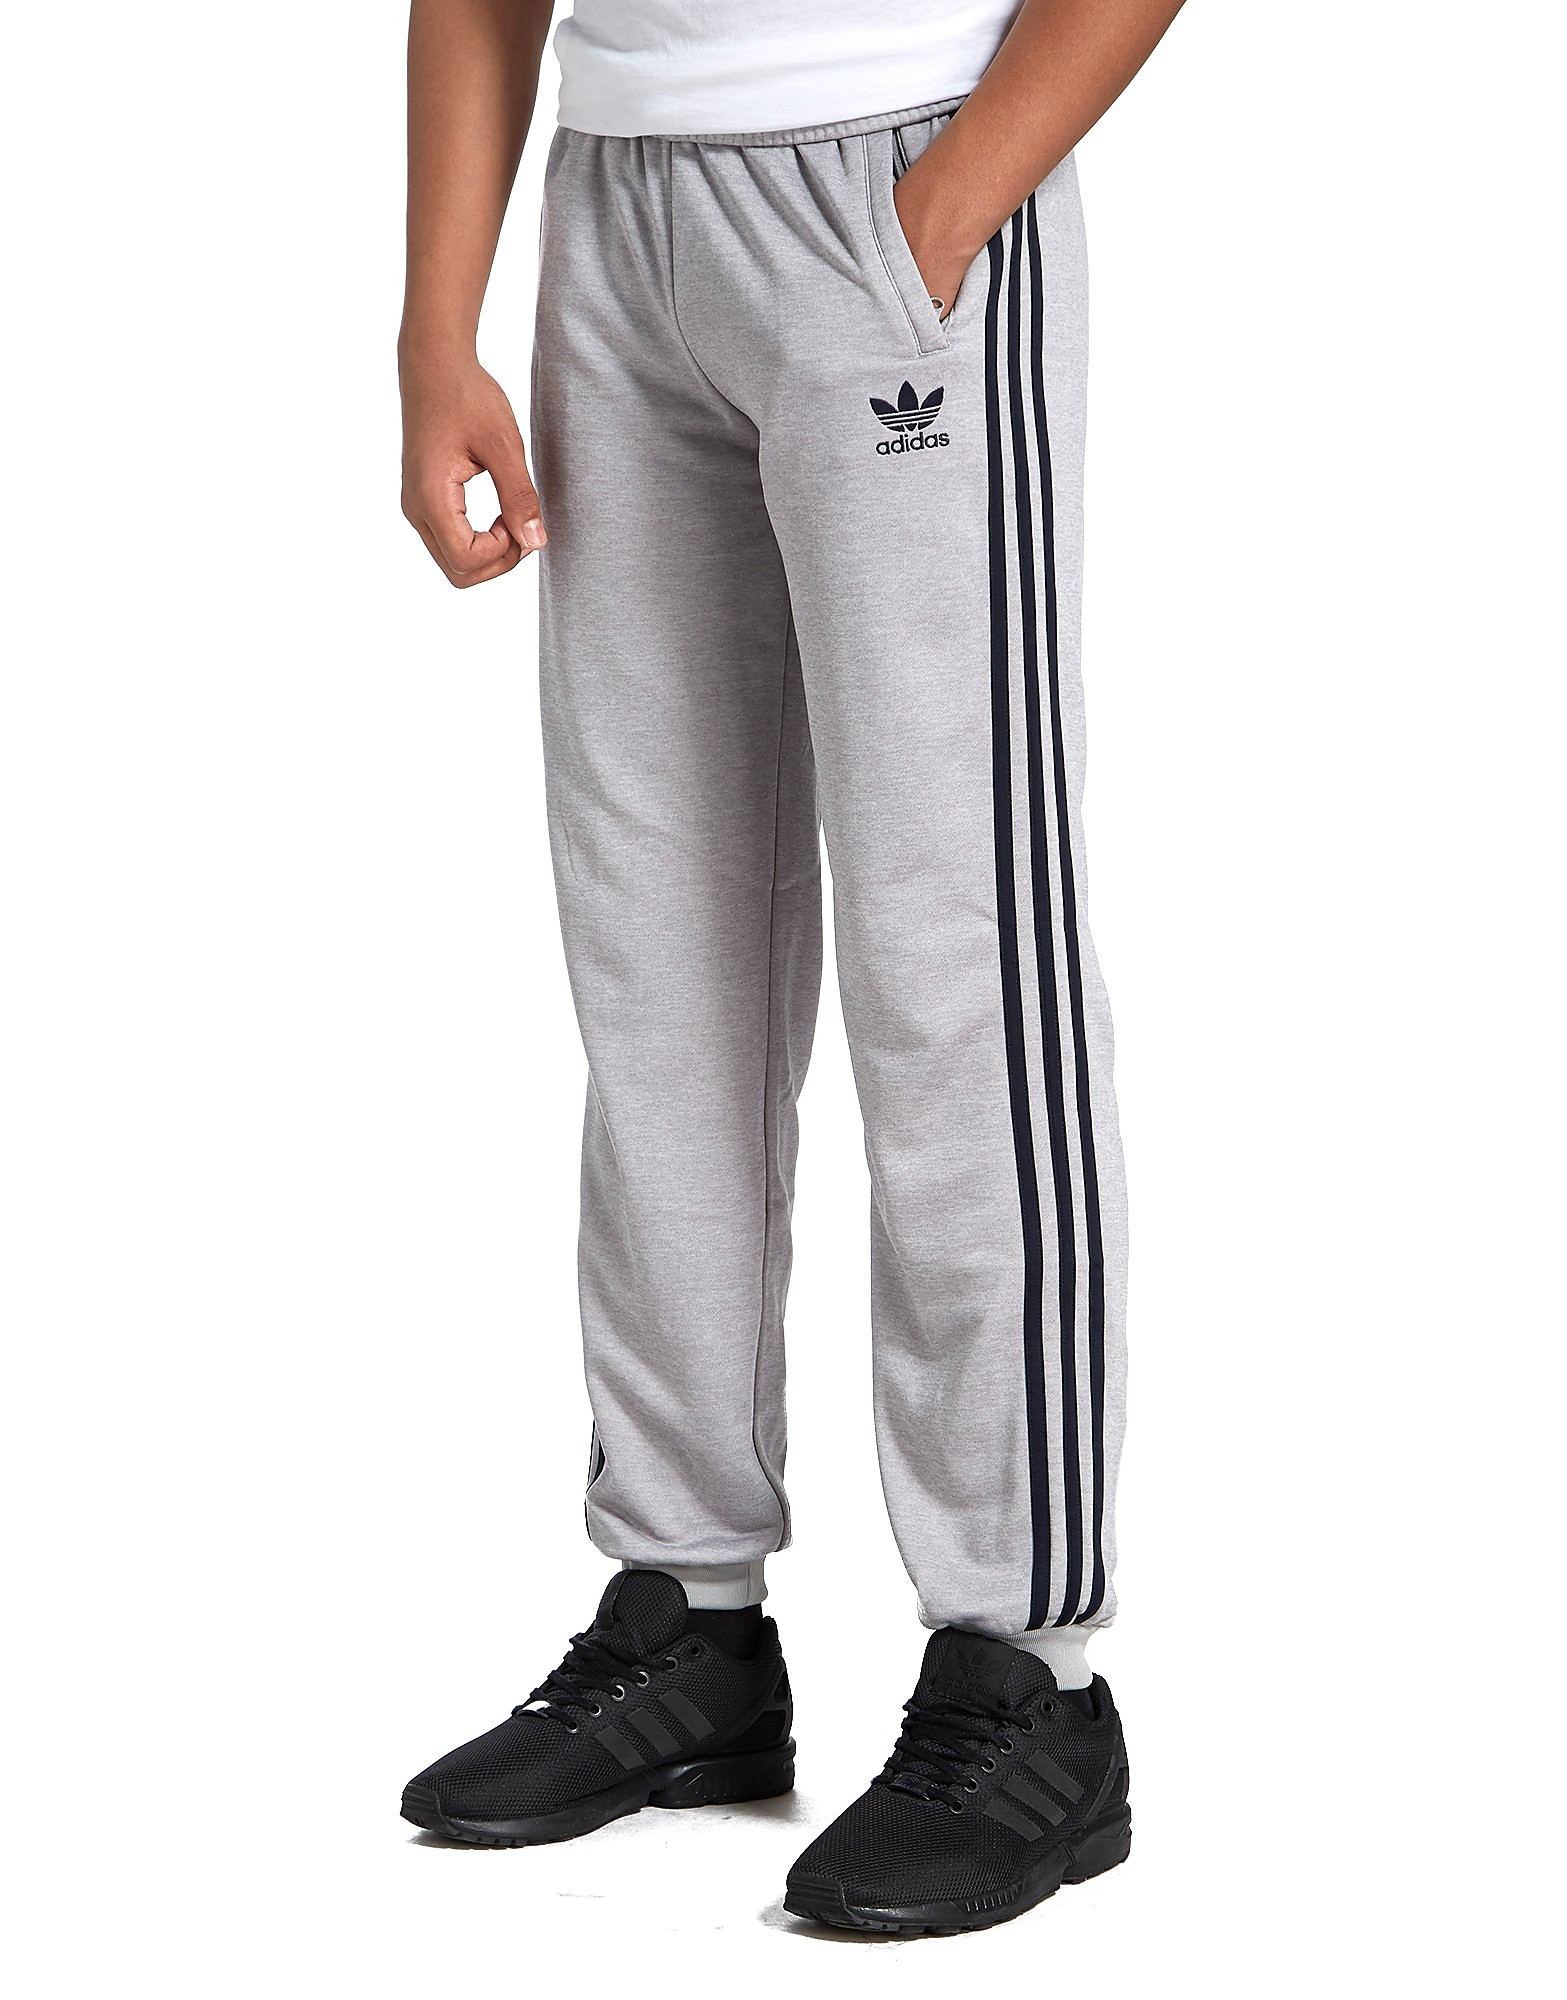 adidas Superstar Pant Junior